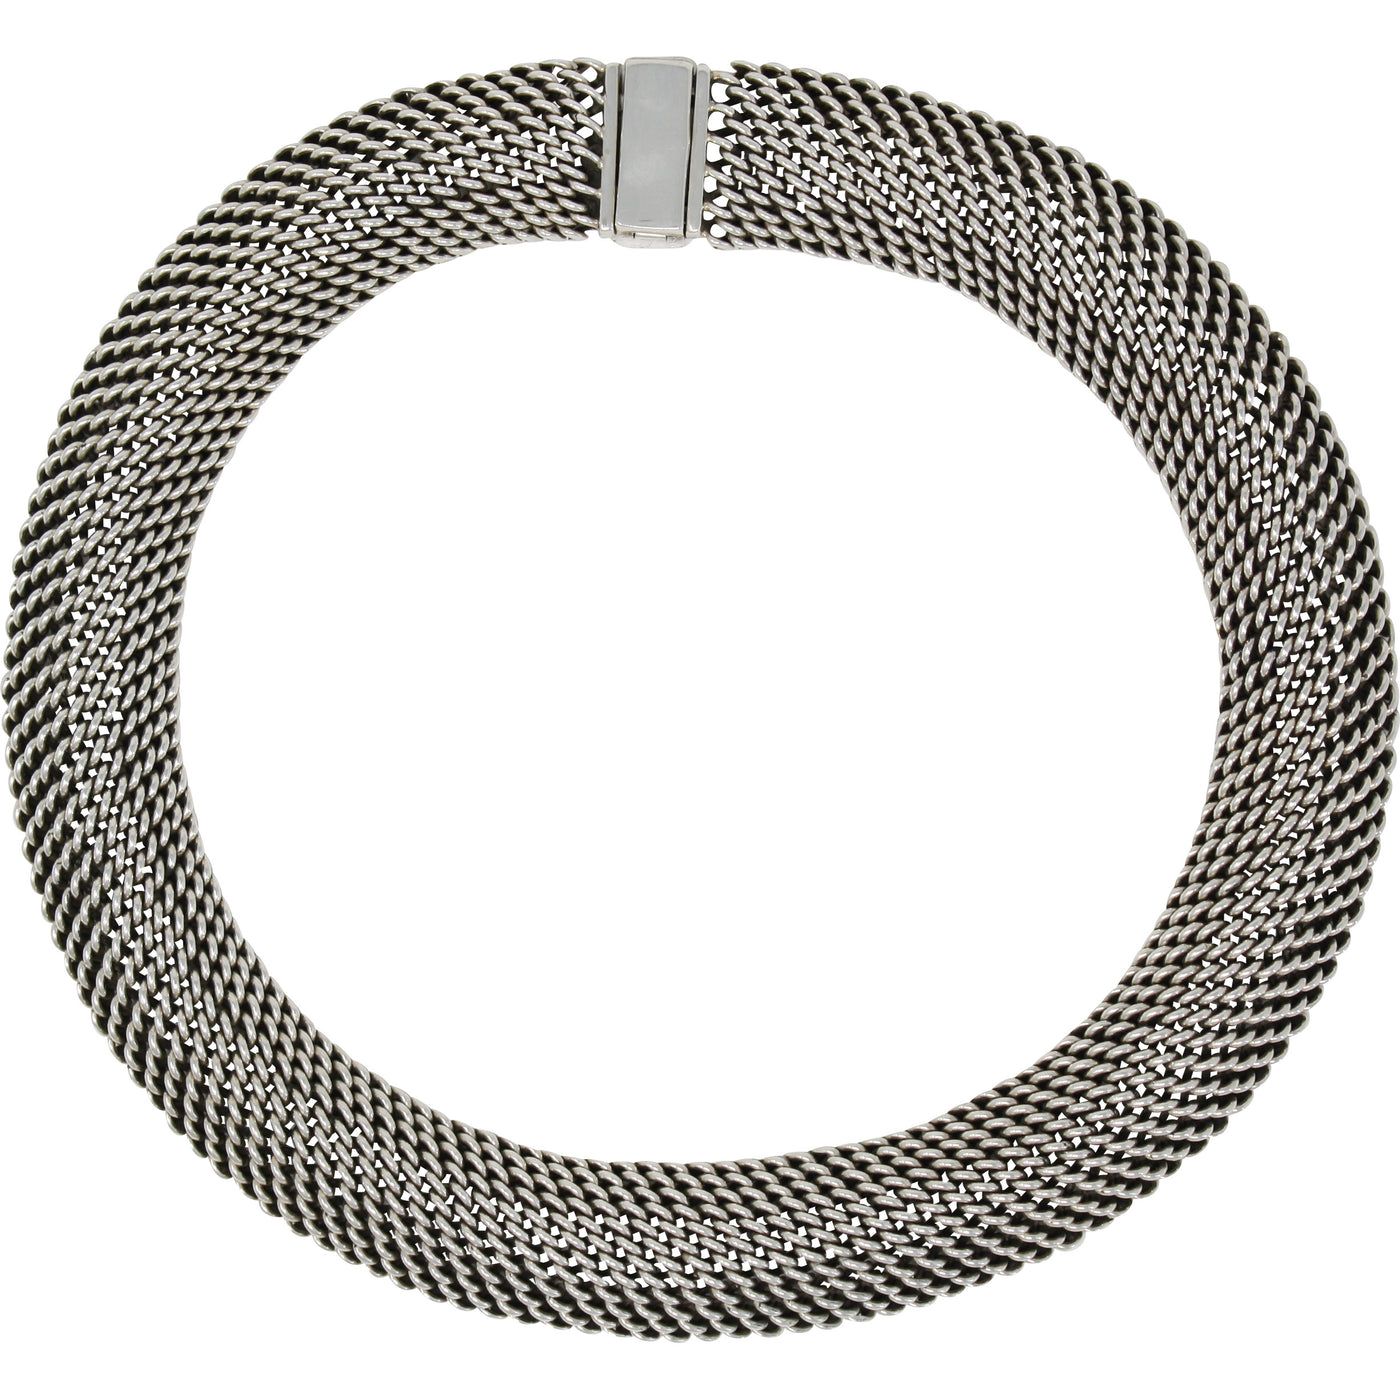 TM 270 HEAVY MESH NECKLACE